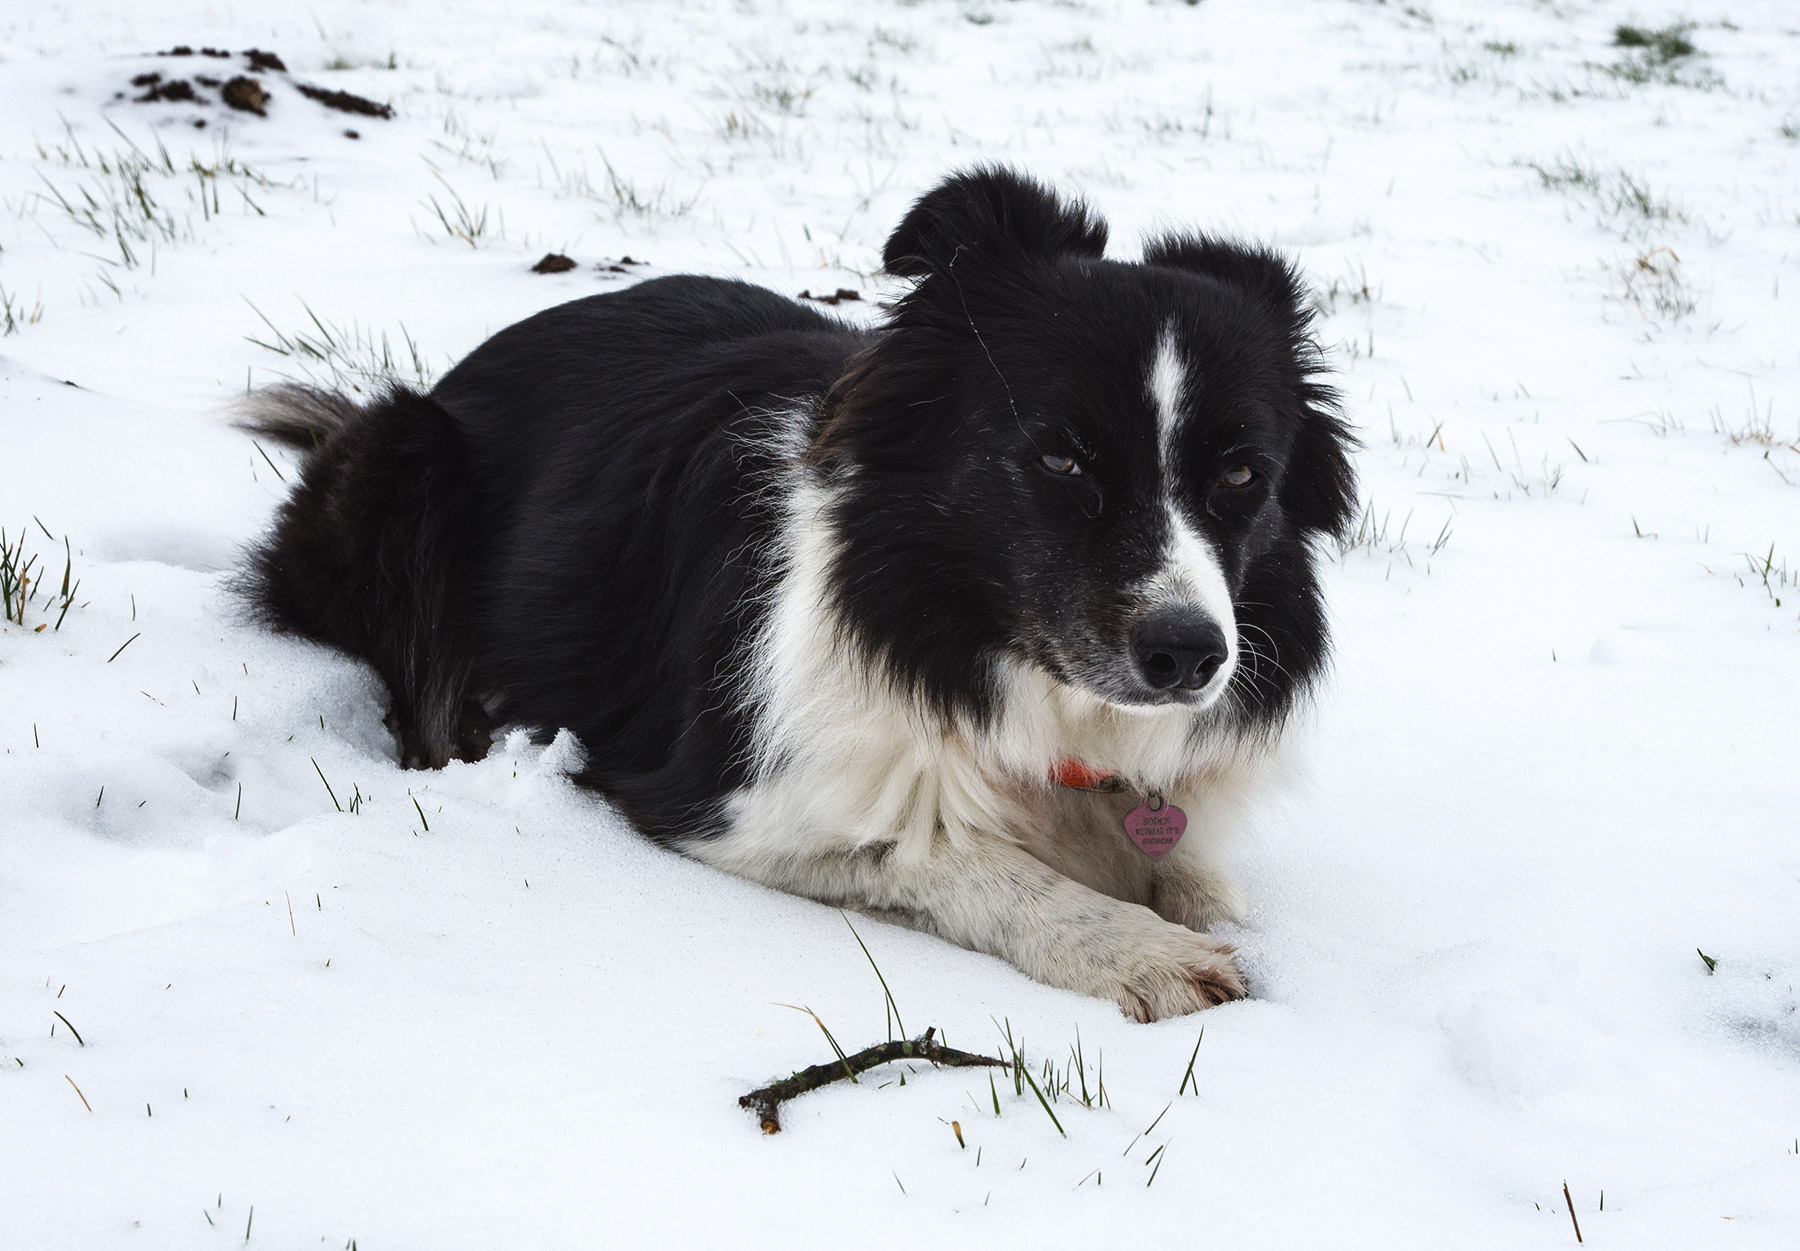 Black and white dog in snow